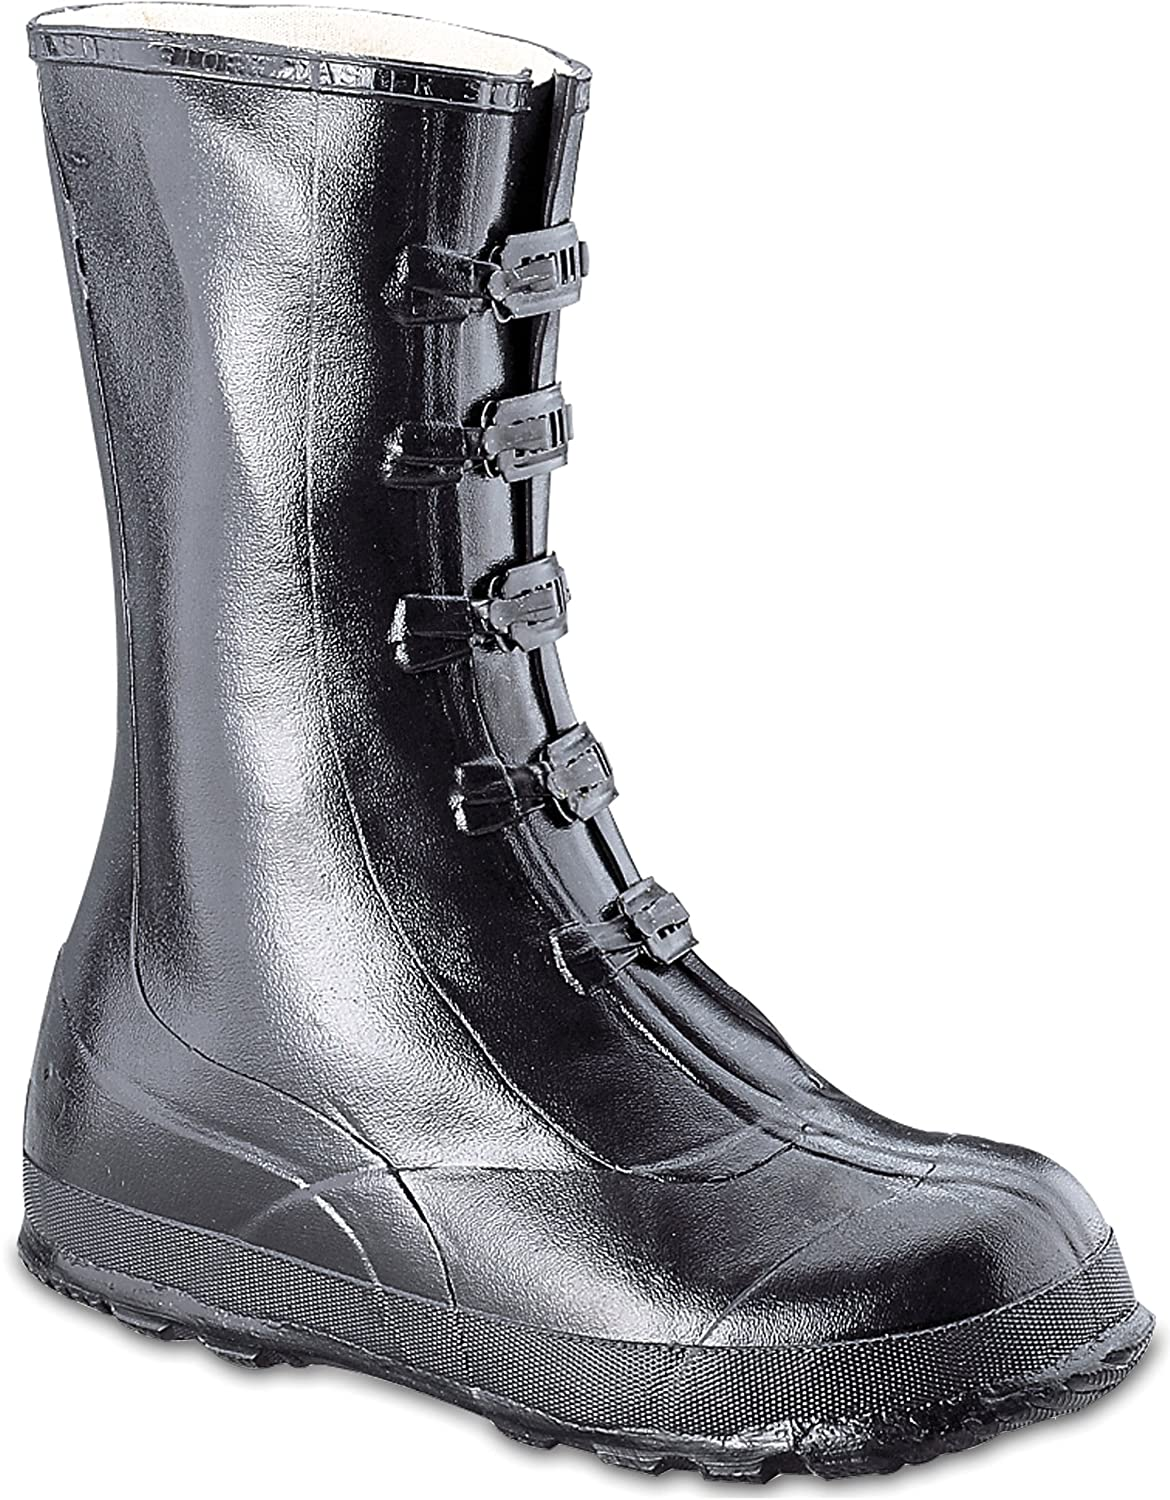 Honeywell Safety A351-9 Servus Rubber Hi Overshoe with 5-Buckle, Size-9, Black